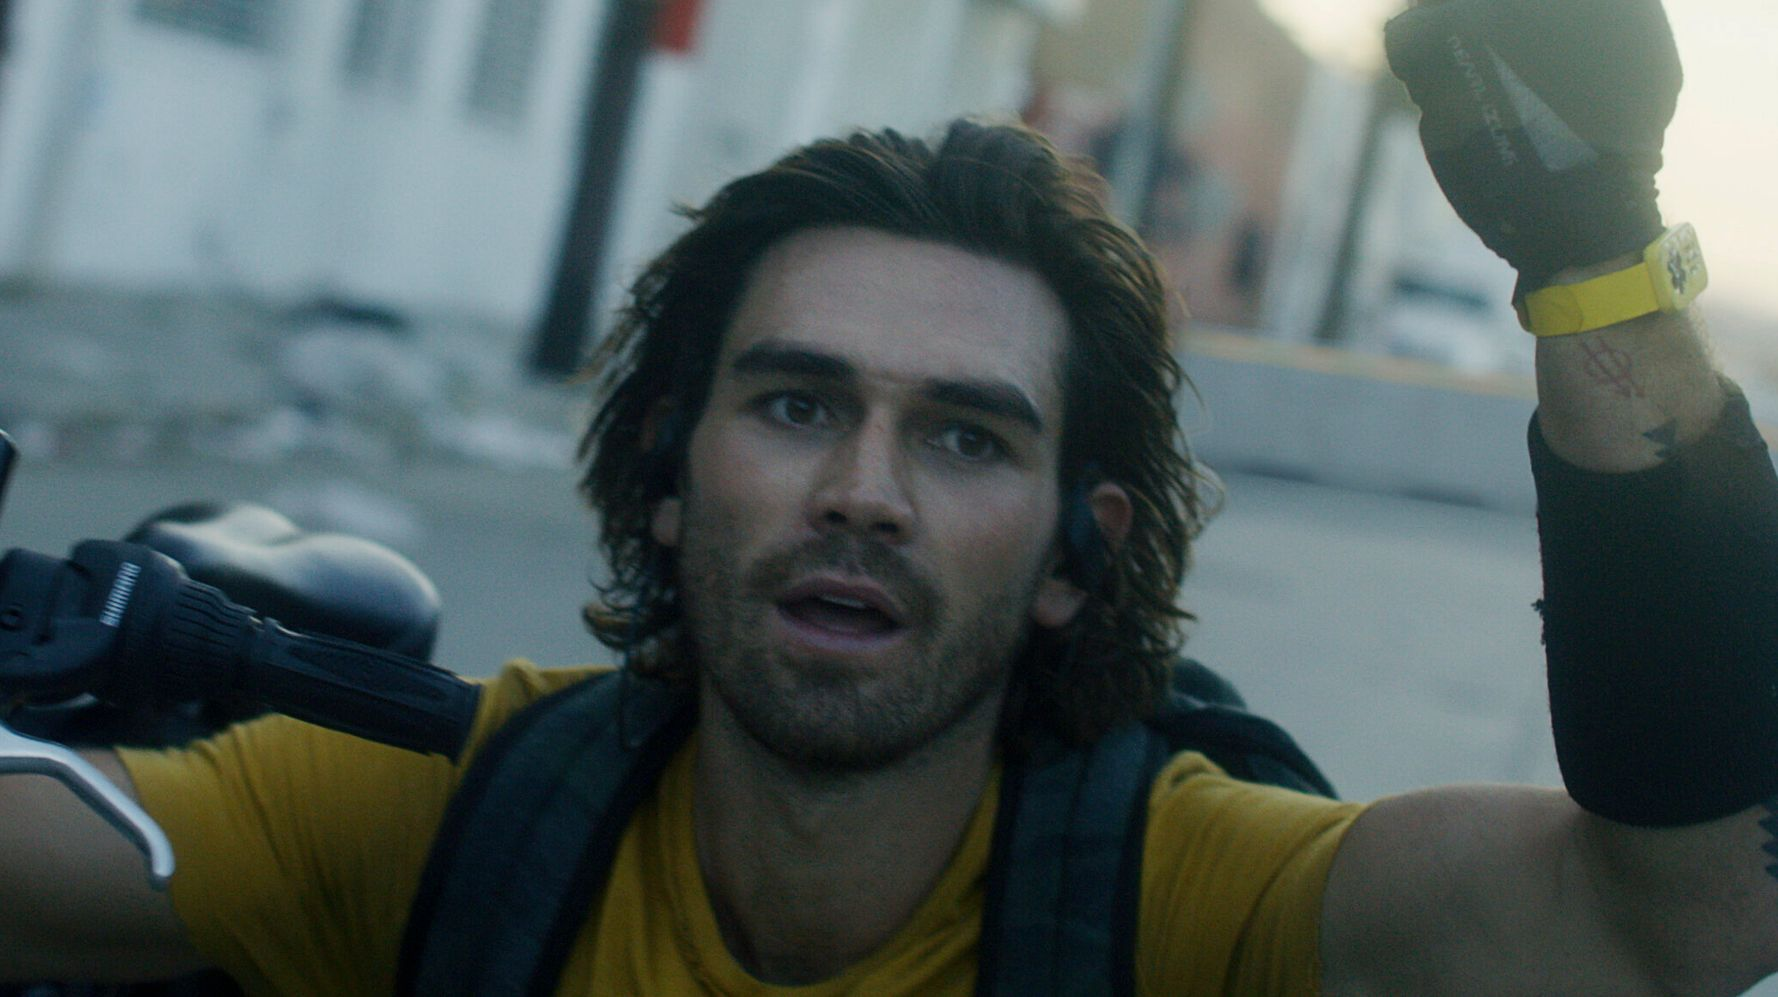 The Trailer For Michael Bay's COVID-19 Movie Is Here, And People Have Thoughts